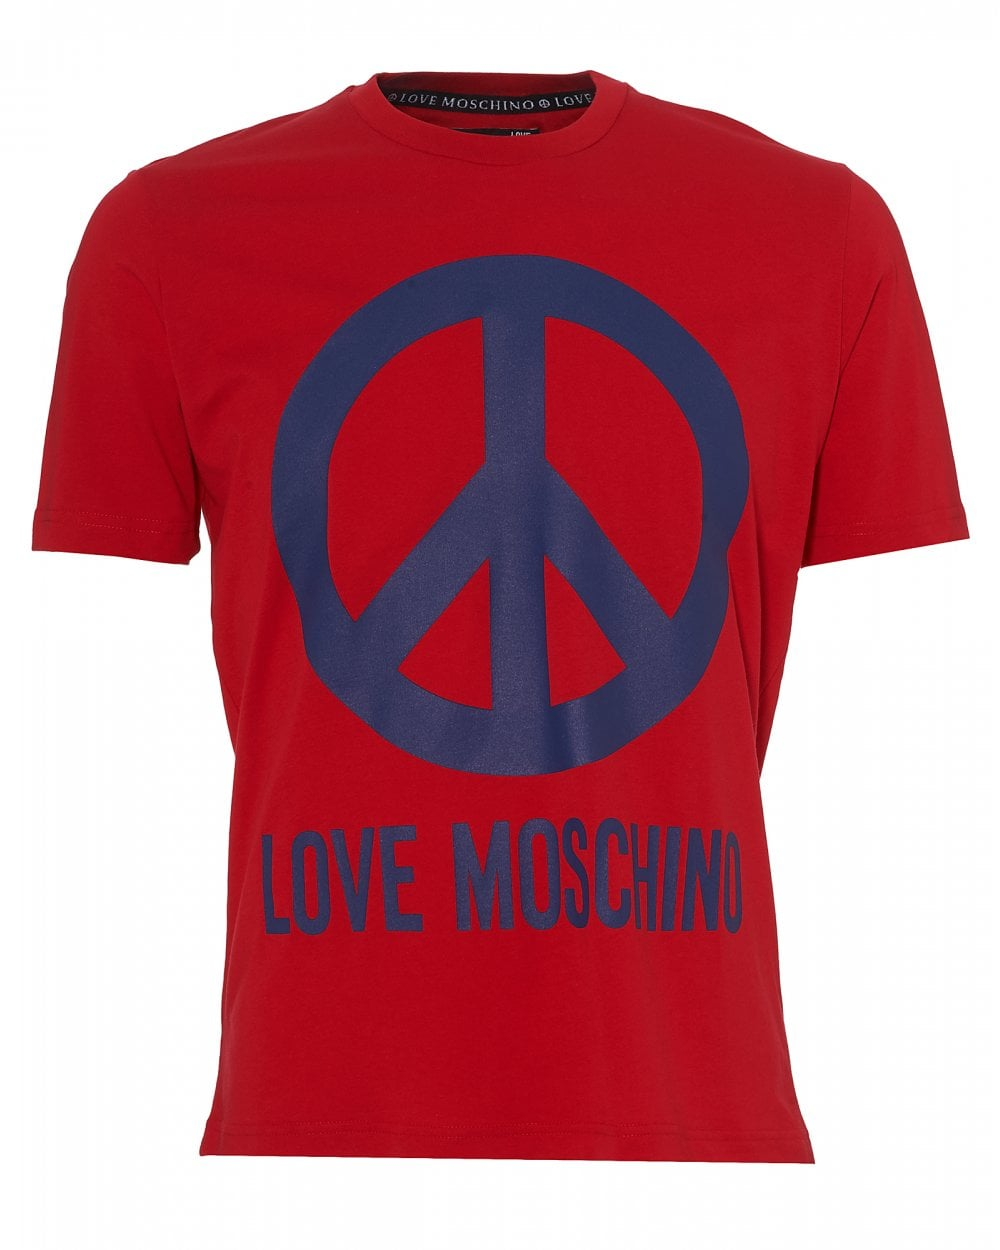 40a7a38f Love Moschino Mens Large Peace Sign T-Shirt, Red Tee